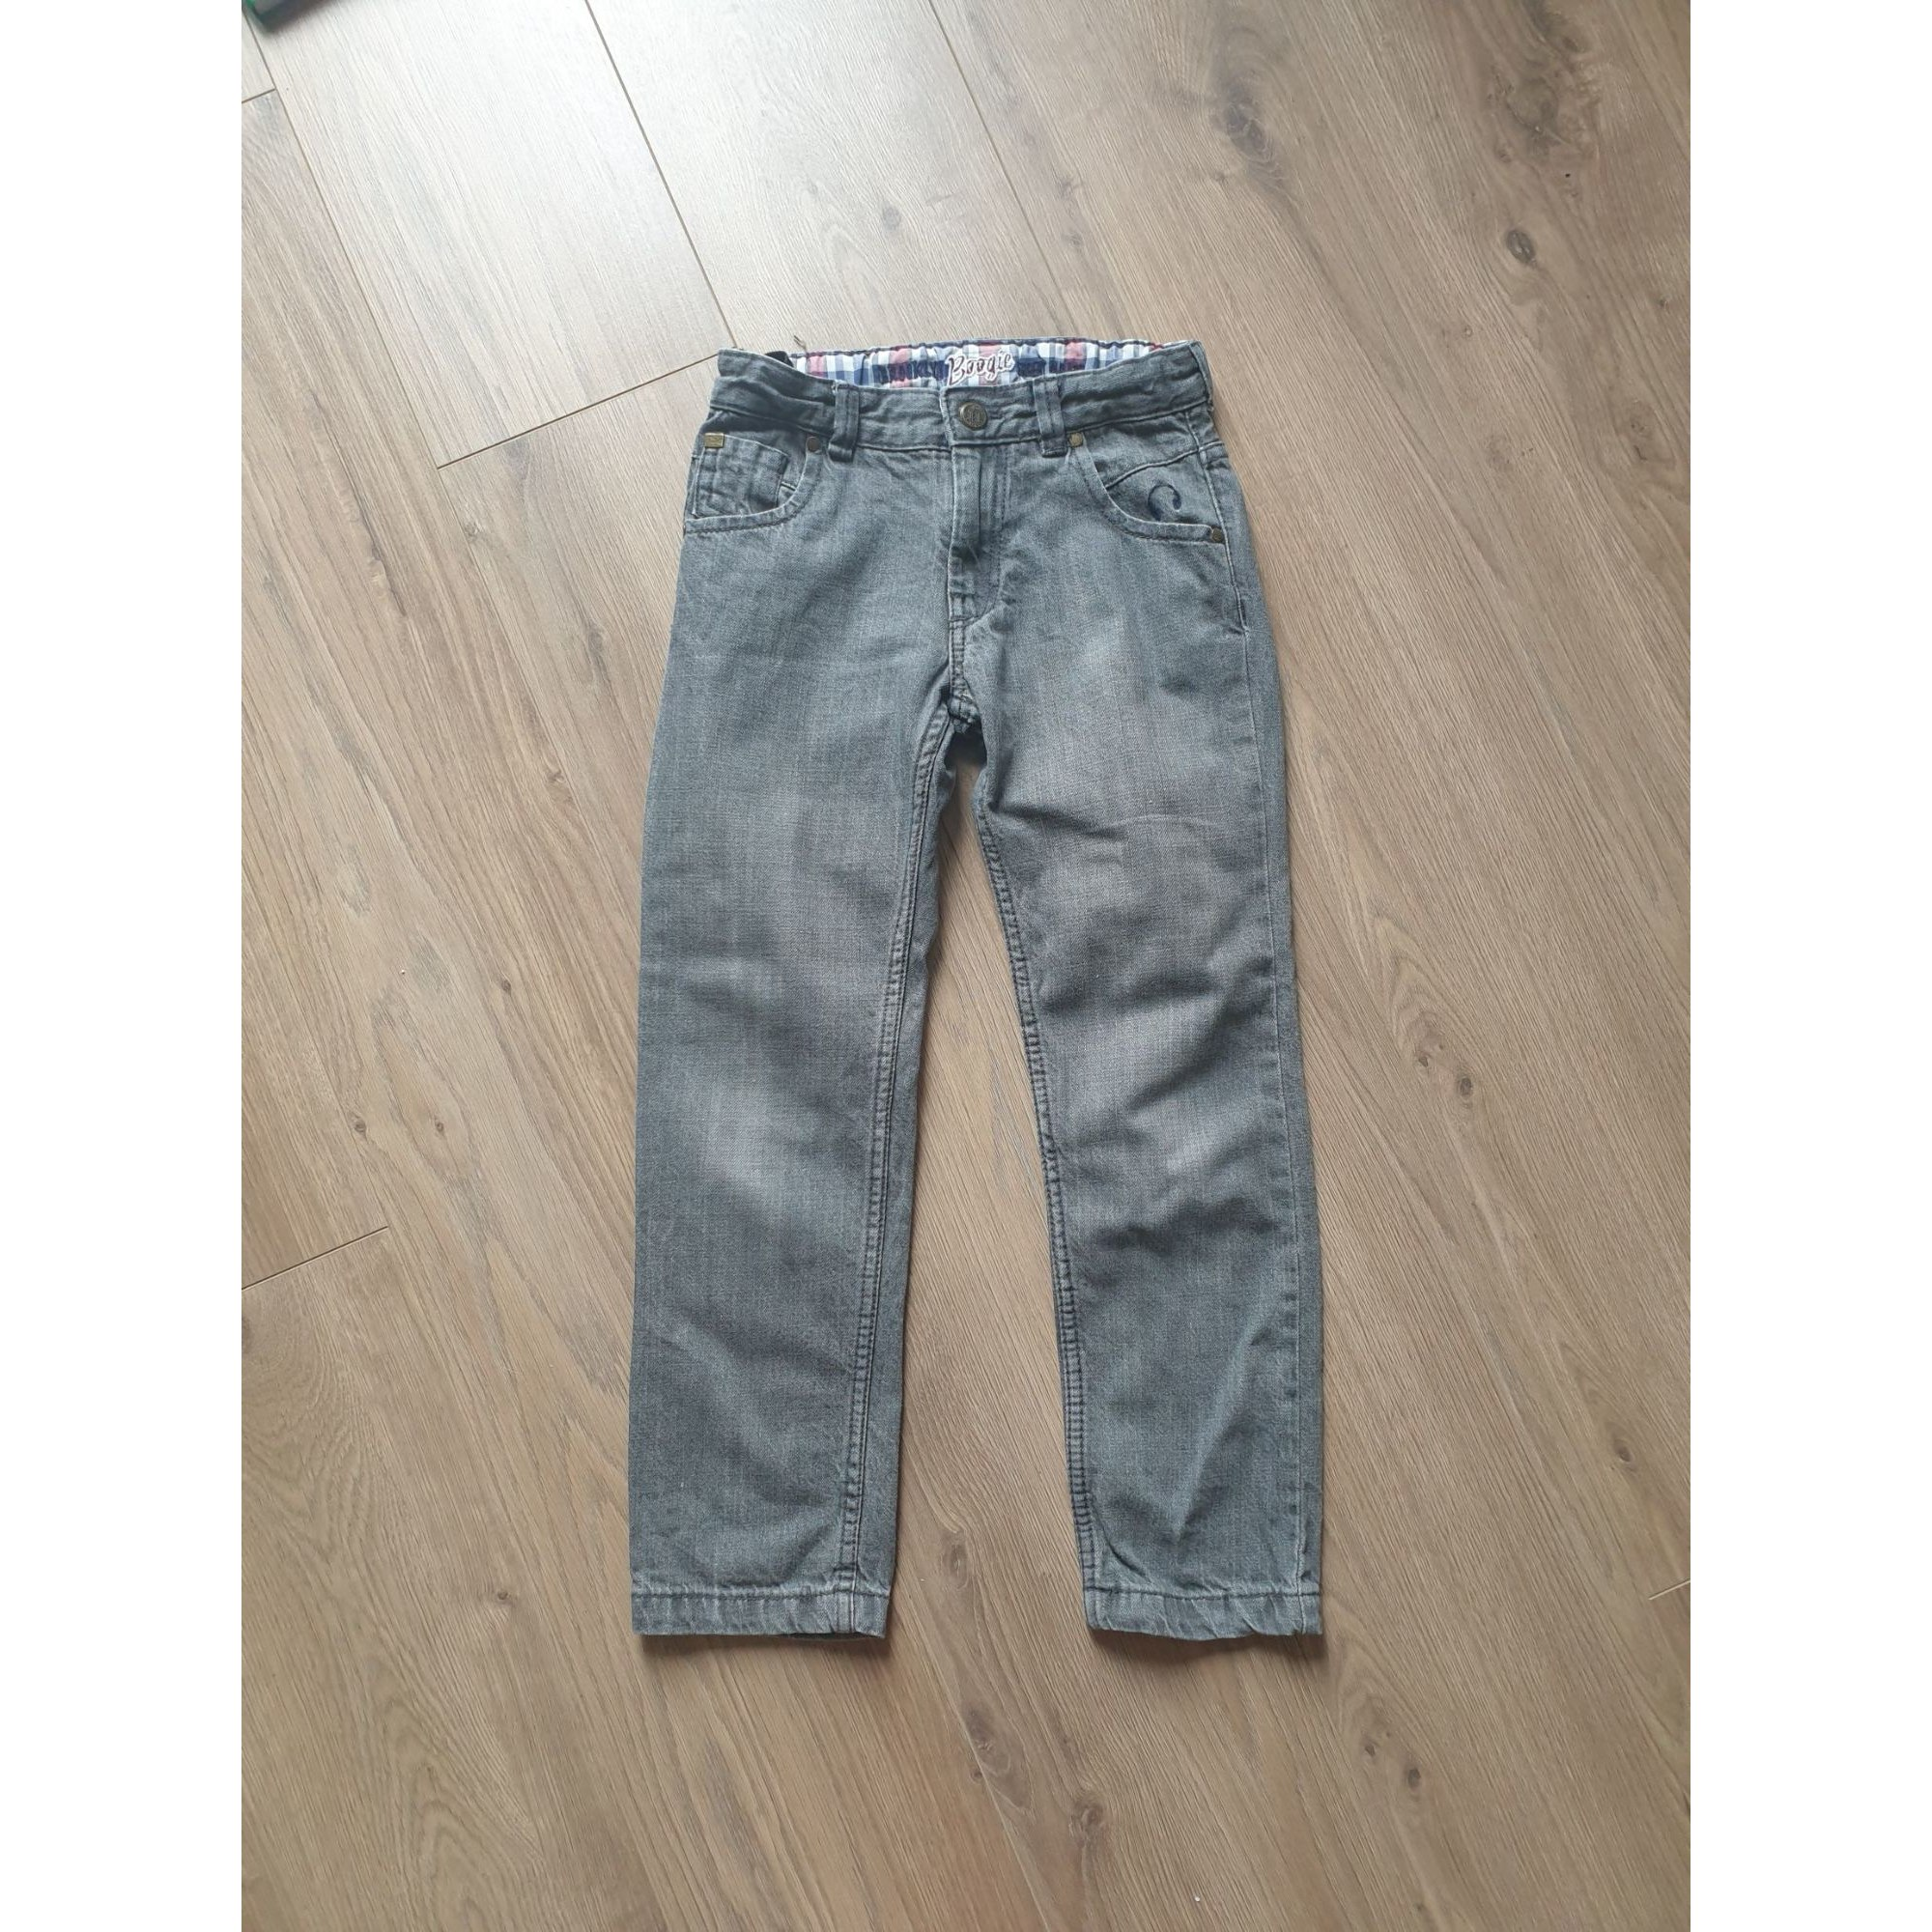 Jeans droit SERGENT MAJOR Gris, anthracite